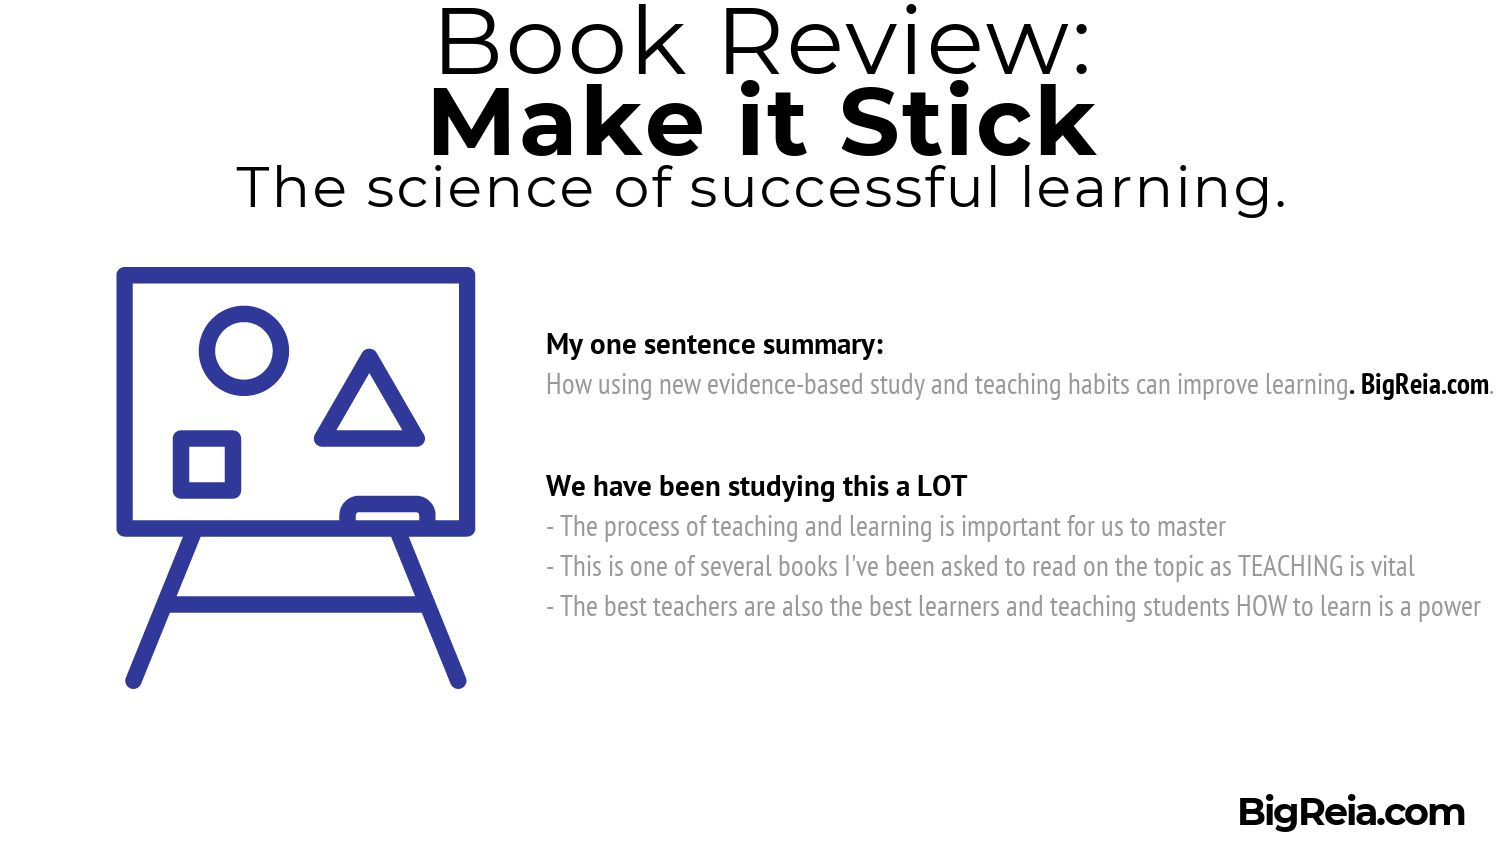 Azam's one sentence book review of Make it Stick